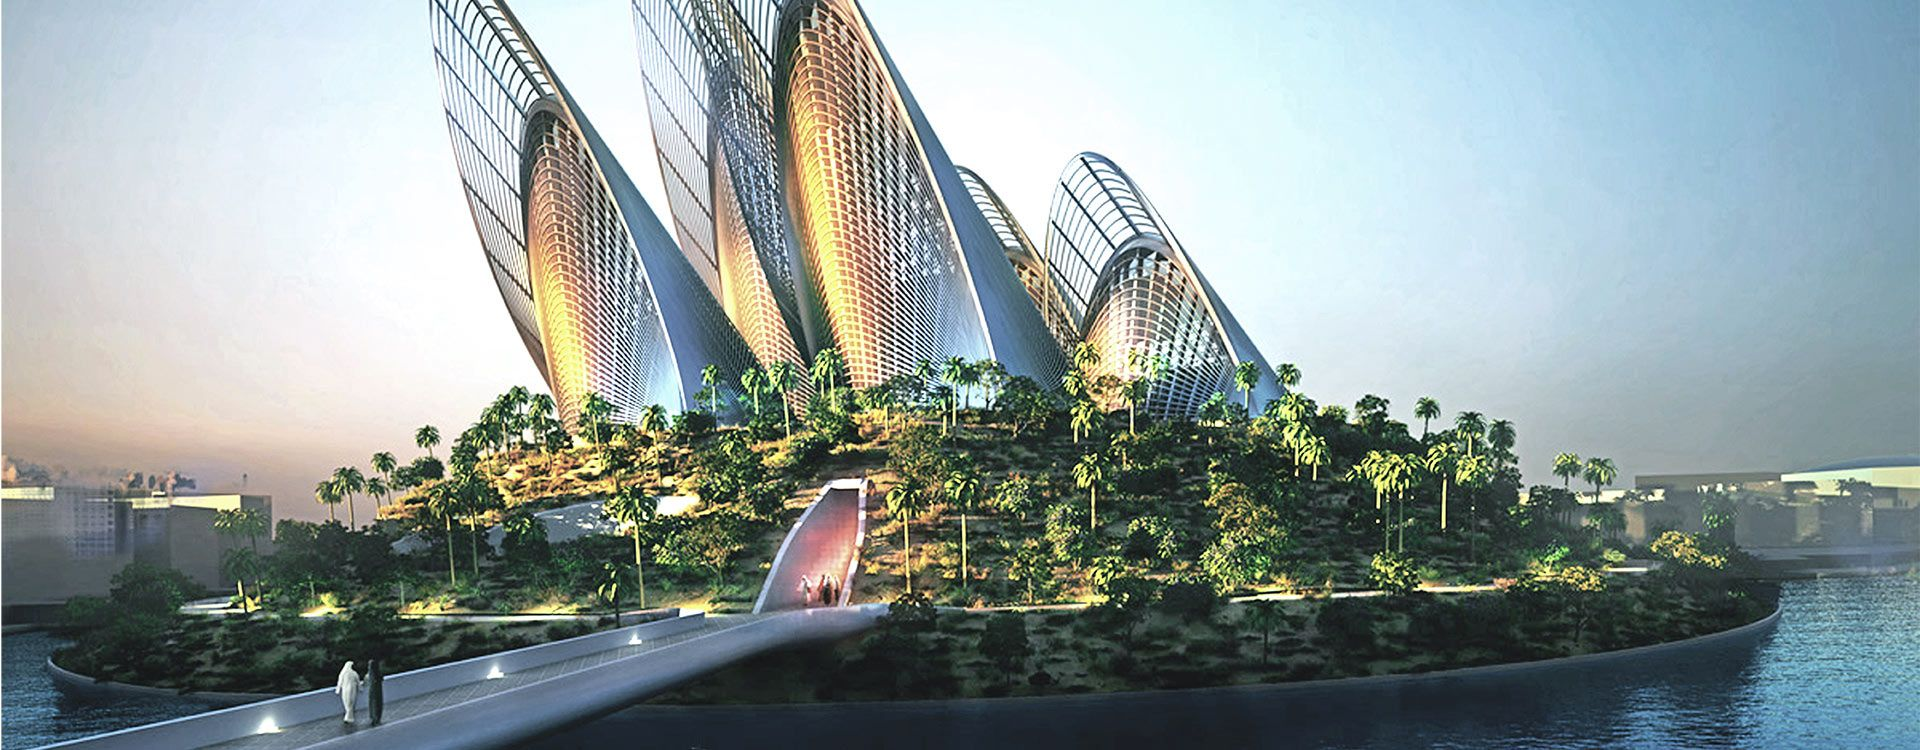 Sheikh Zayed National Museum Project - Saadiyat Island Development